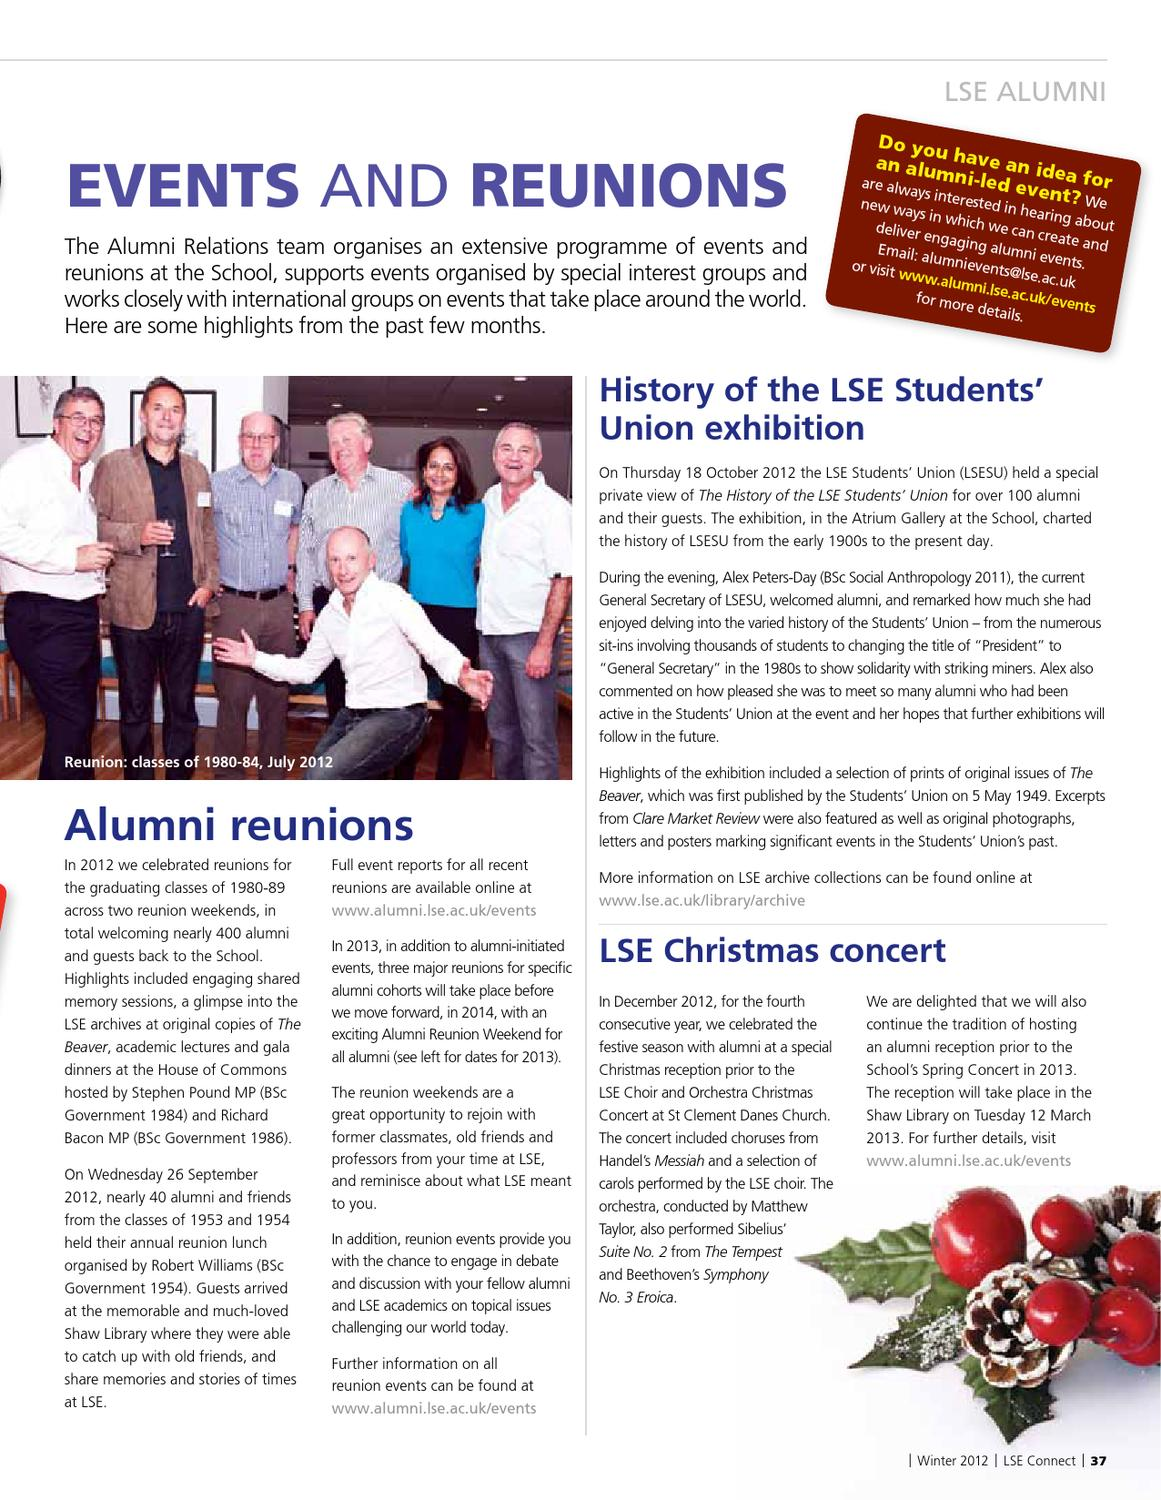 LSE Connect Winter 2012 by London School of Economics - issuu